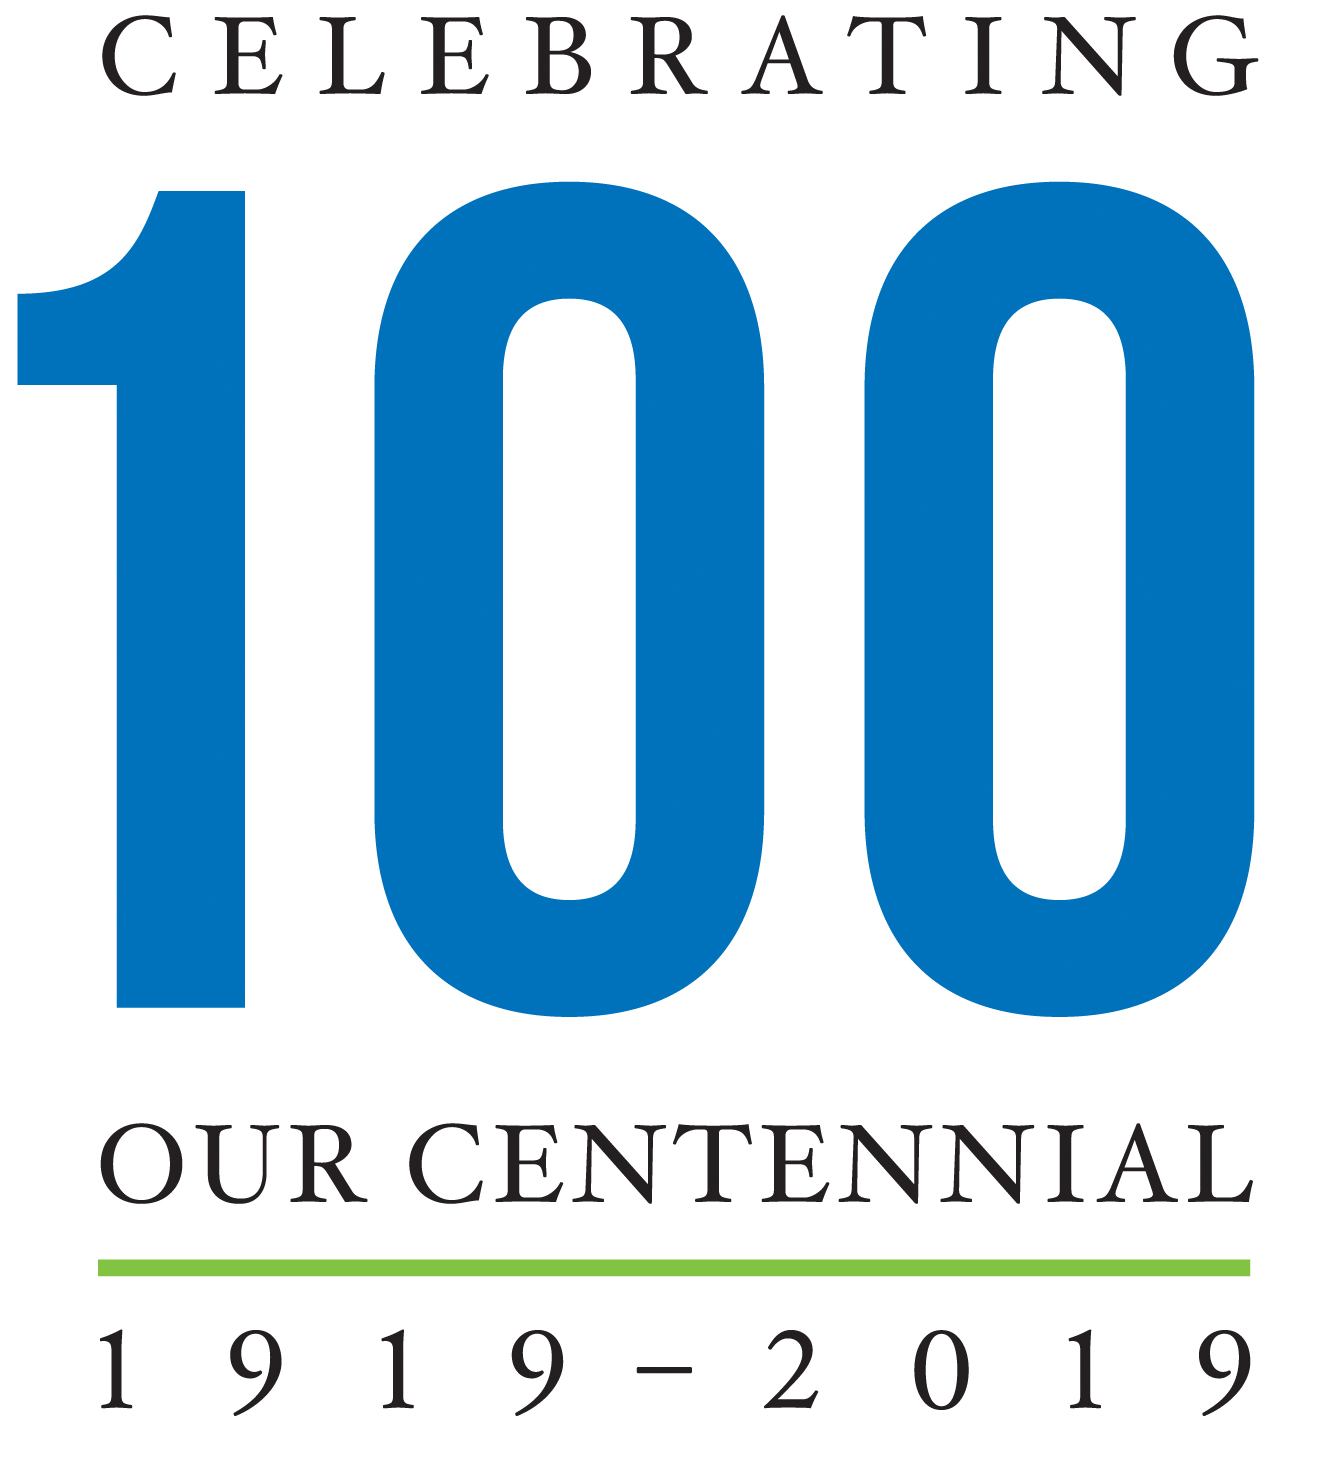 Did You Know it's Our 100th Birthday?